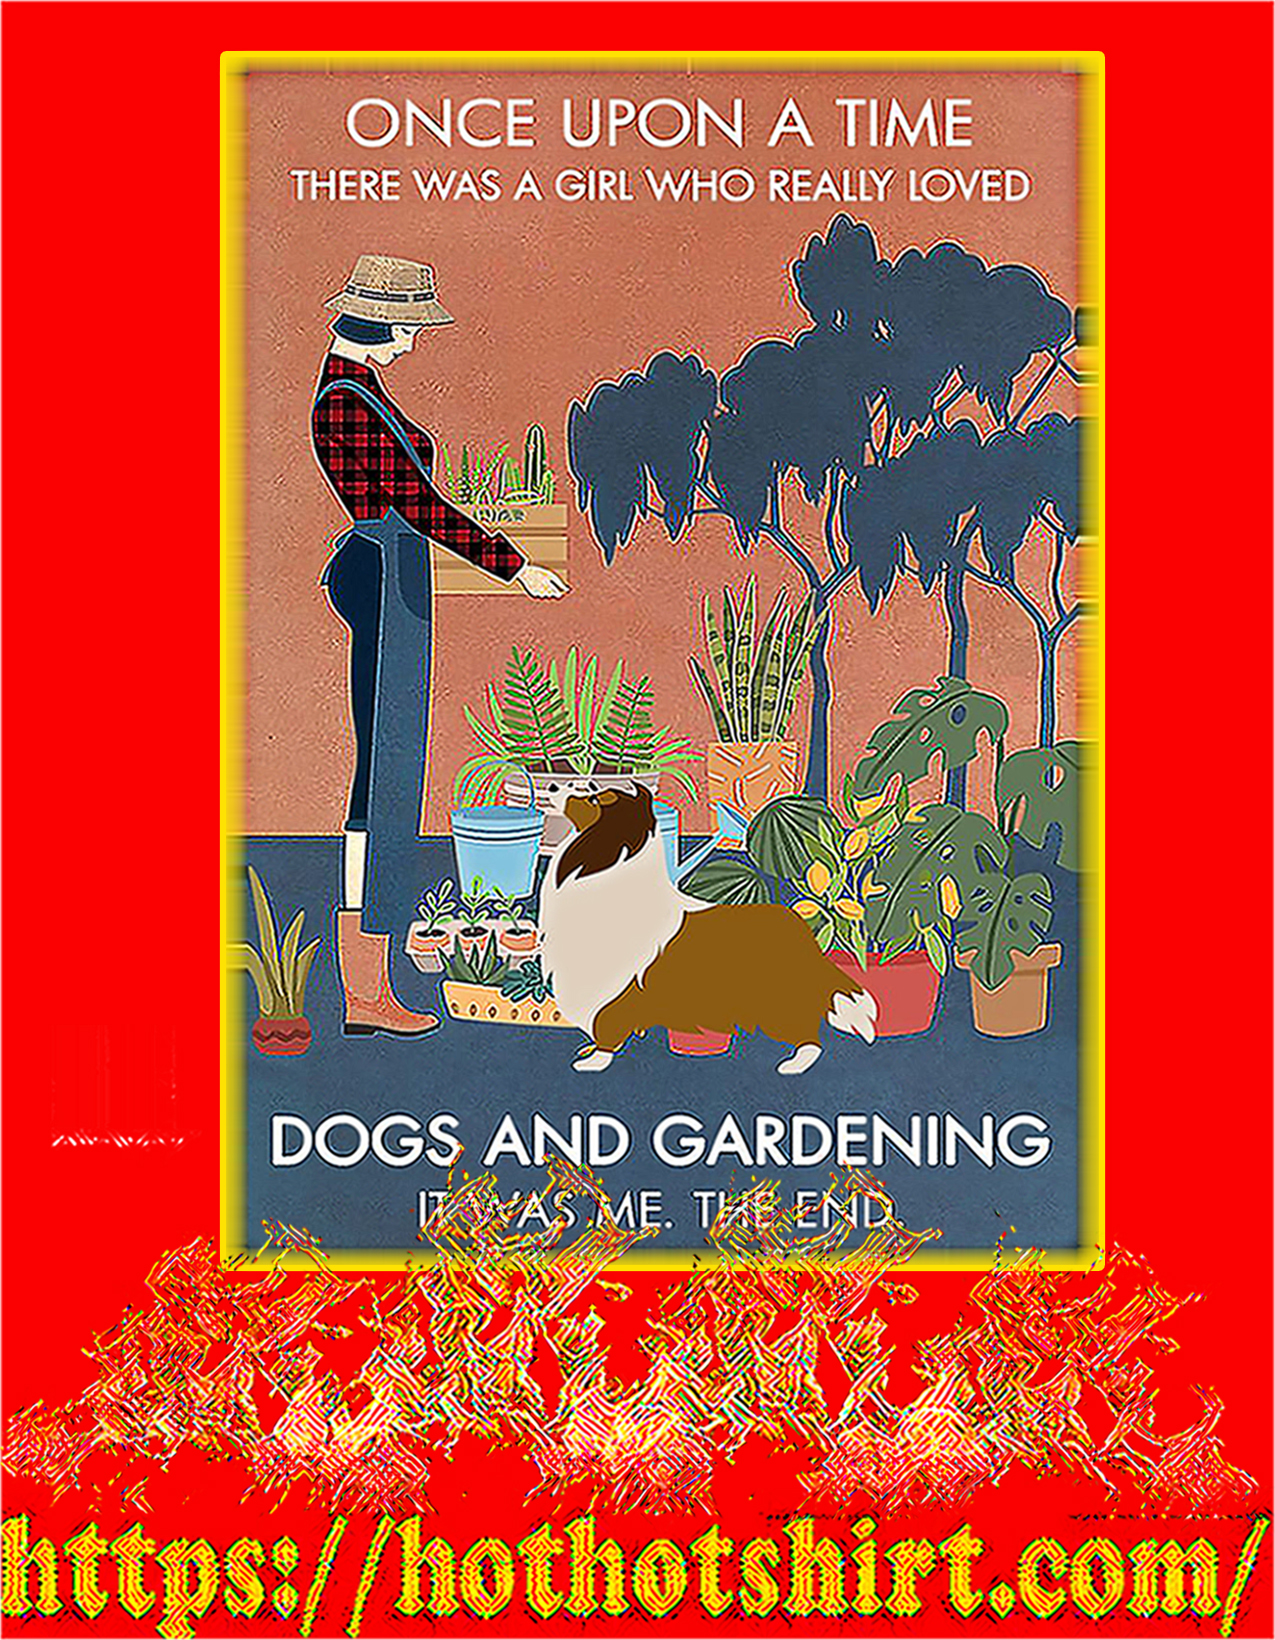 Shetland Sheepdog One upon a time there was a girl loved dogs and gardening poster - A2